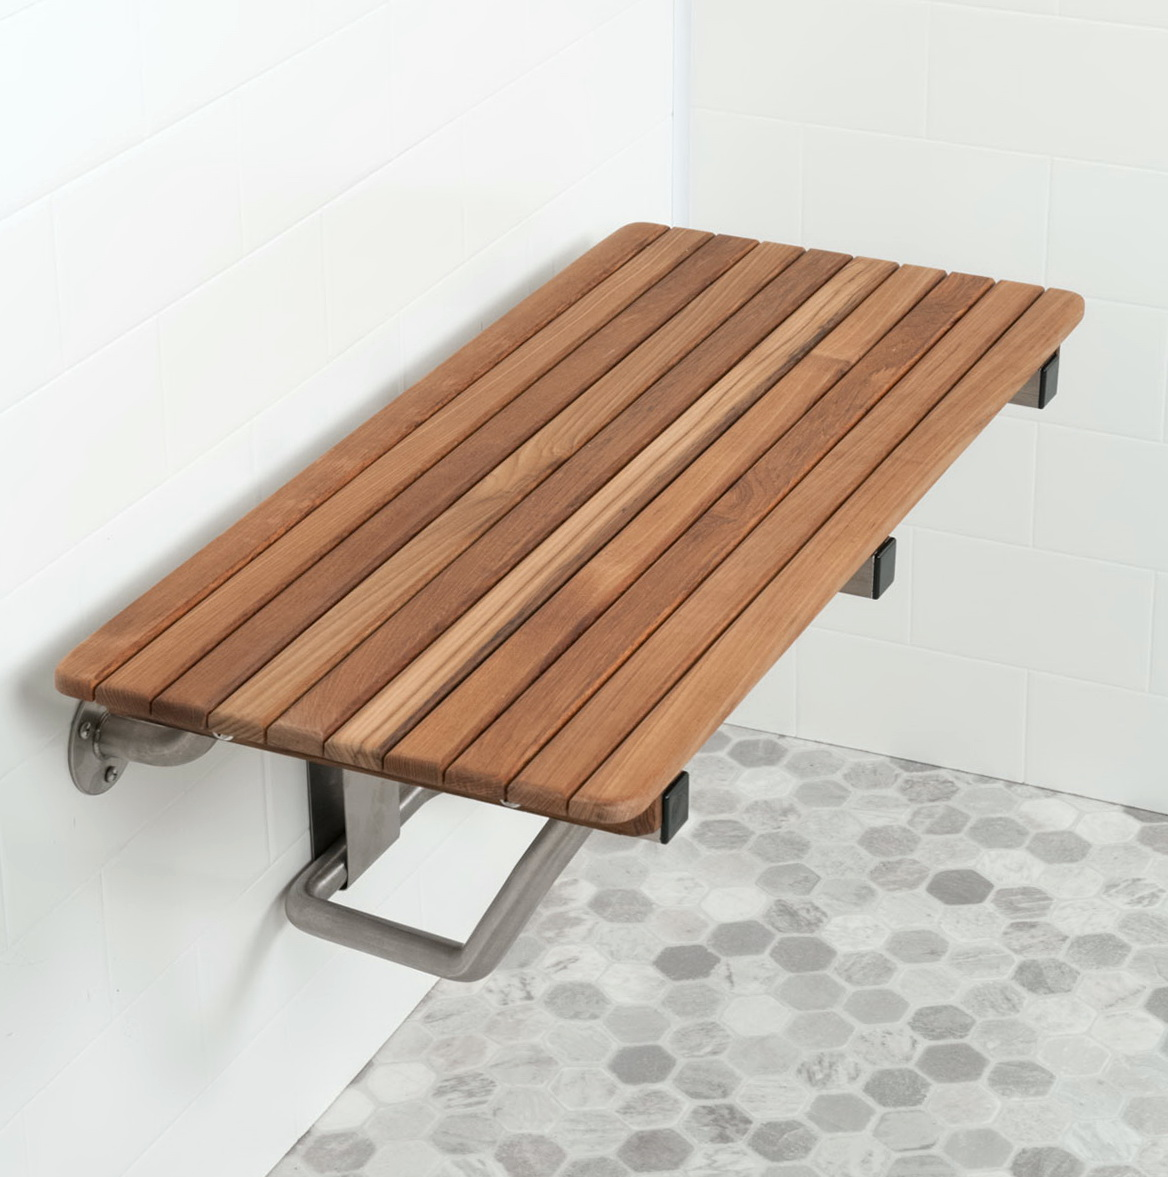 Folding Teak Shower Stool | Home design ideas